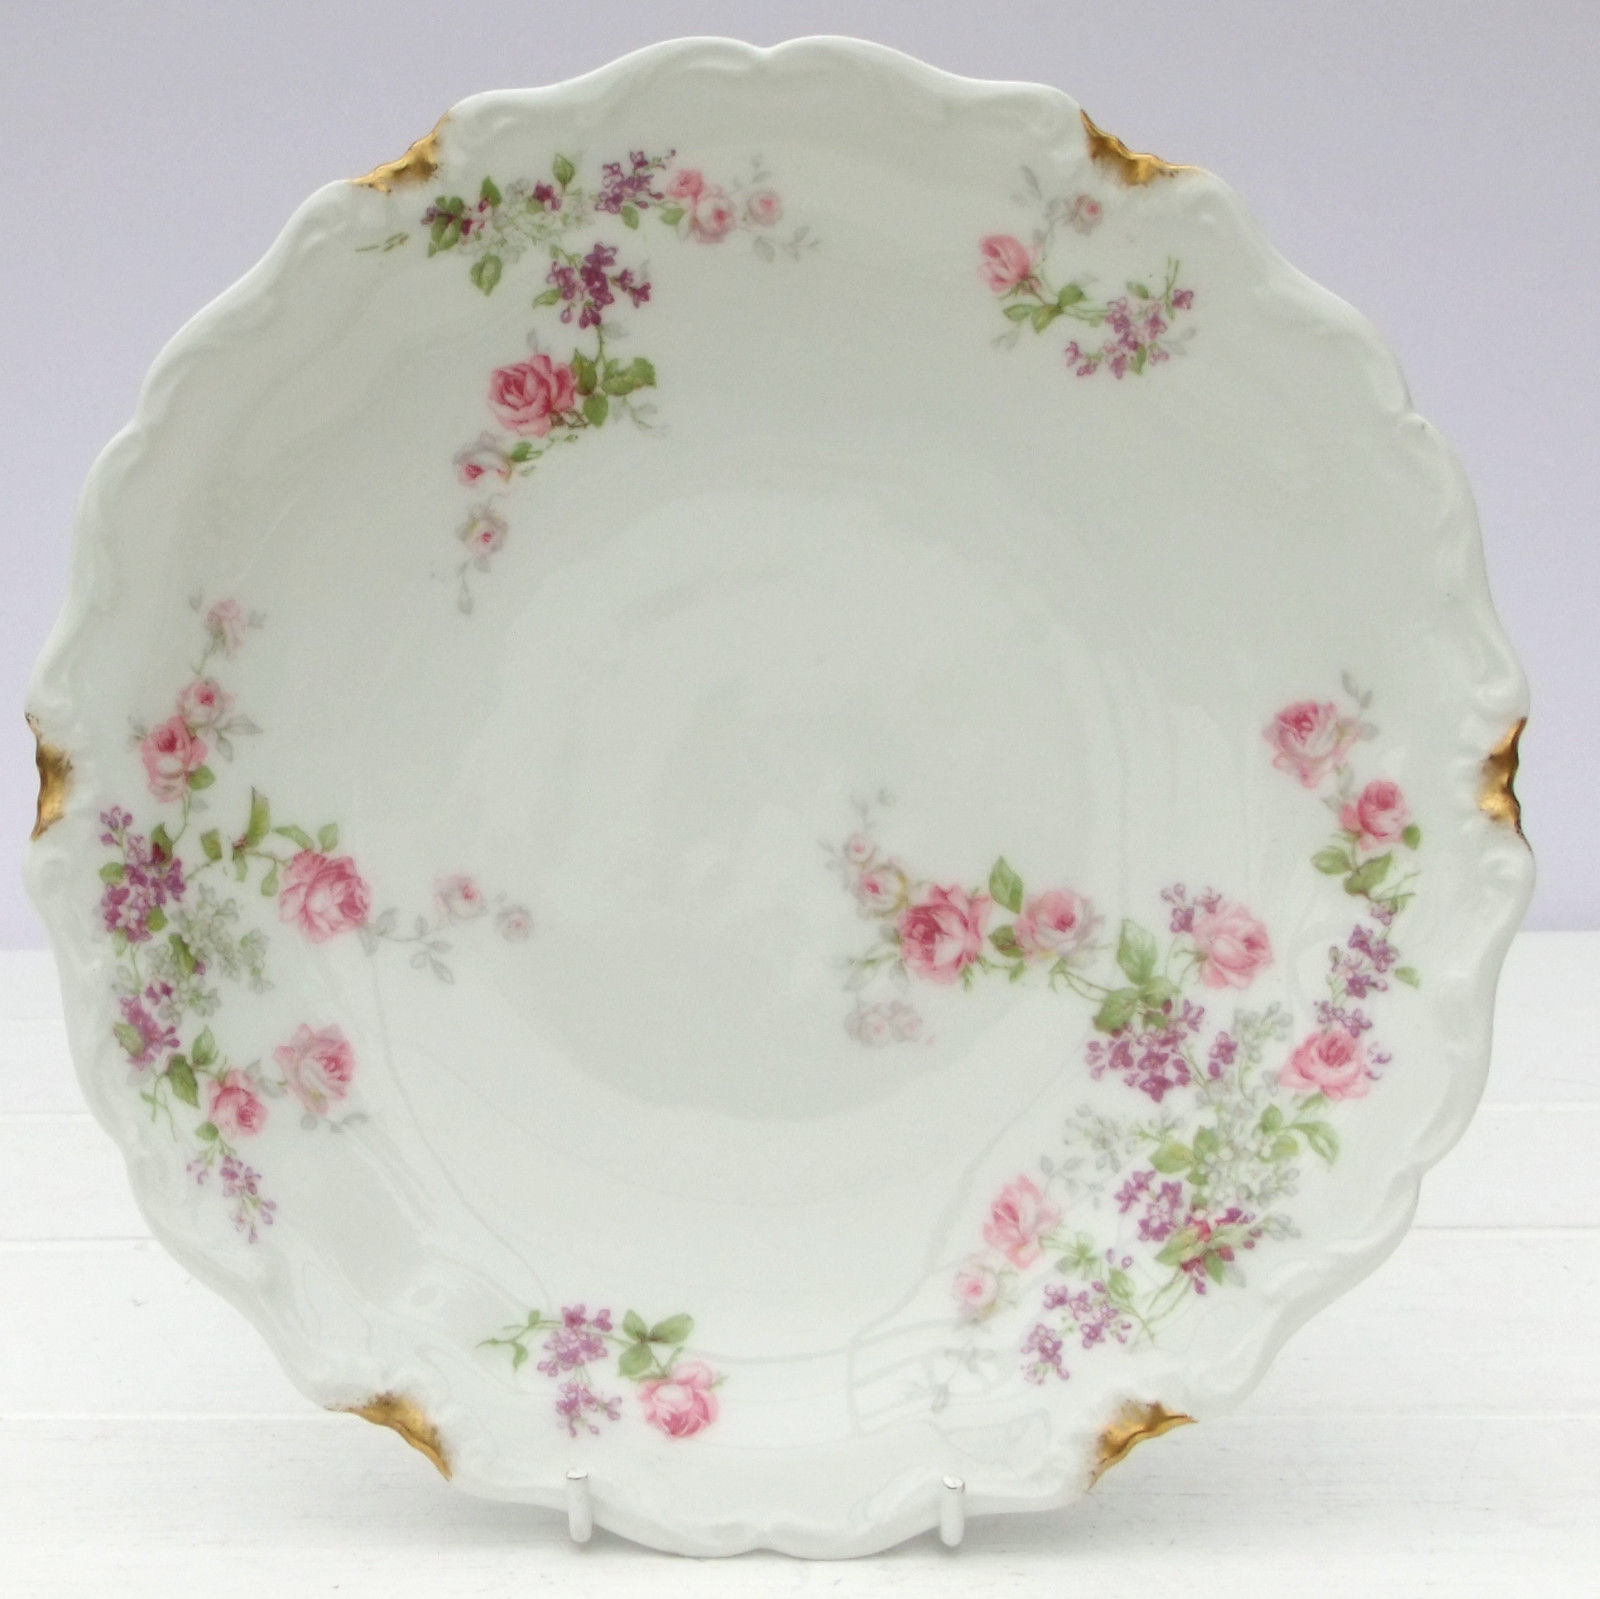 Vintage French Charles Ahrenfeldt Limoges China Plate Pink Roses On